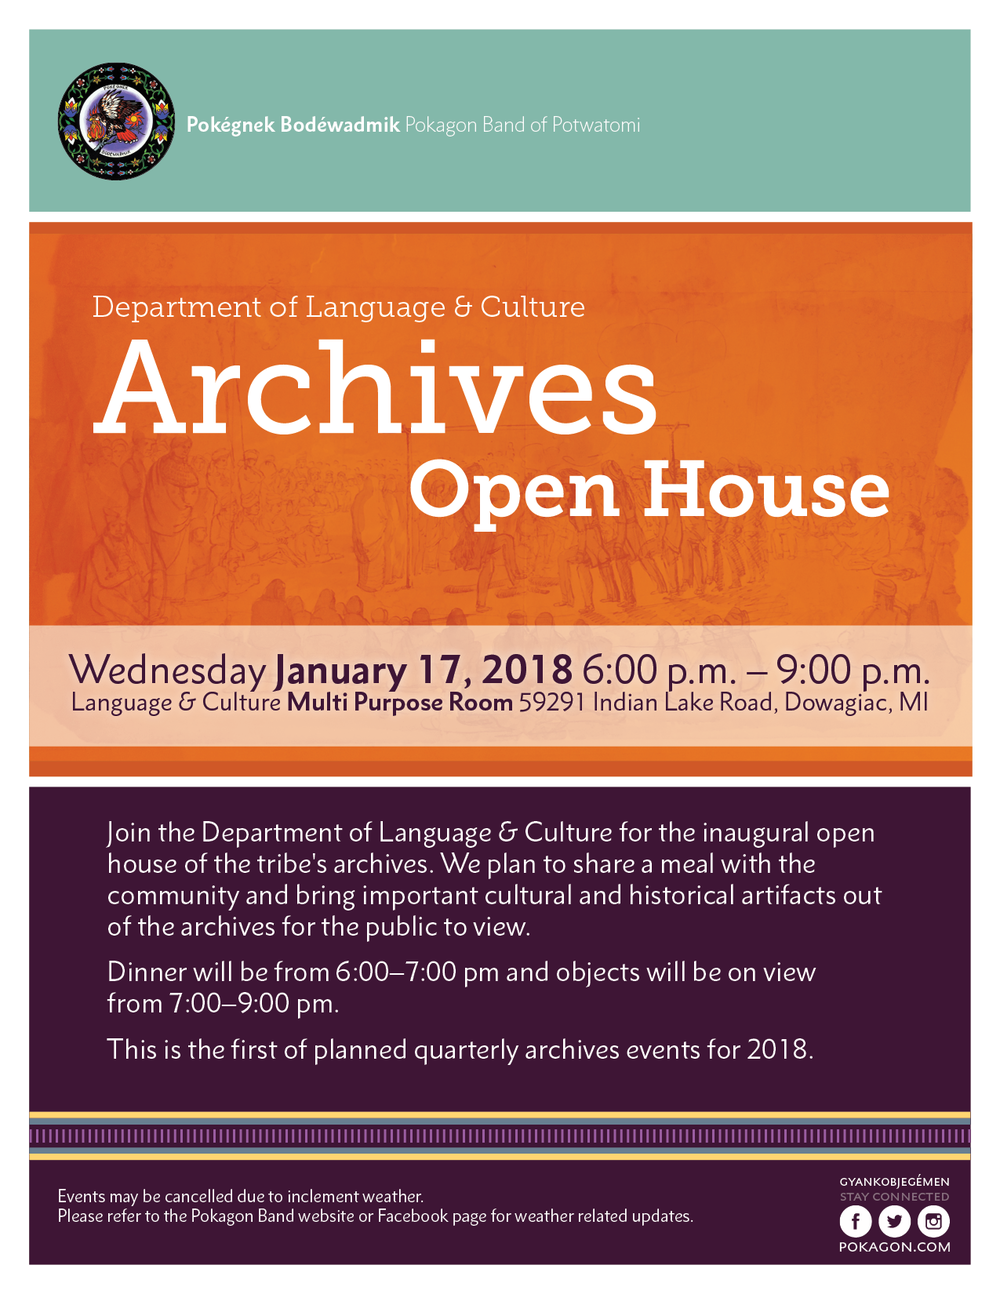 2018 archives open house flyer FINAL.png